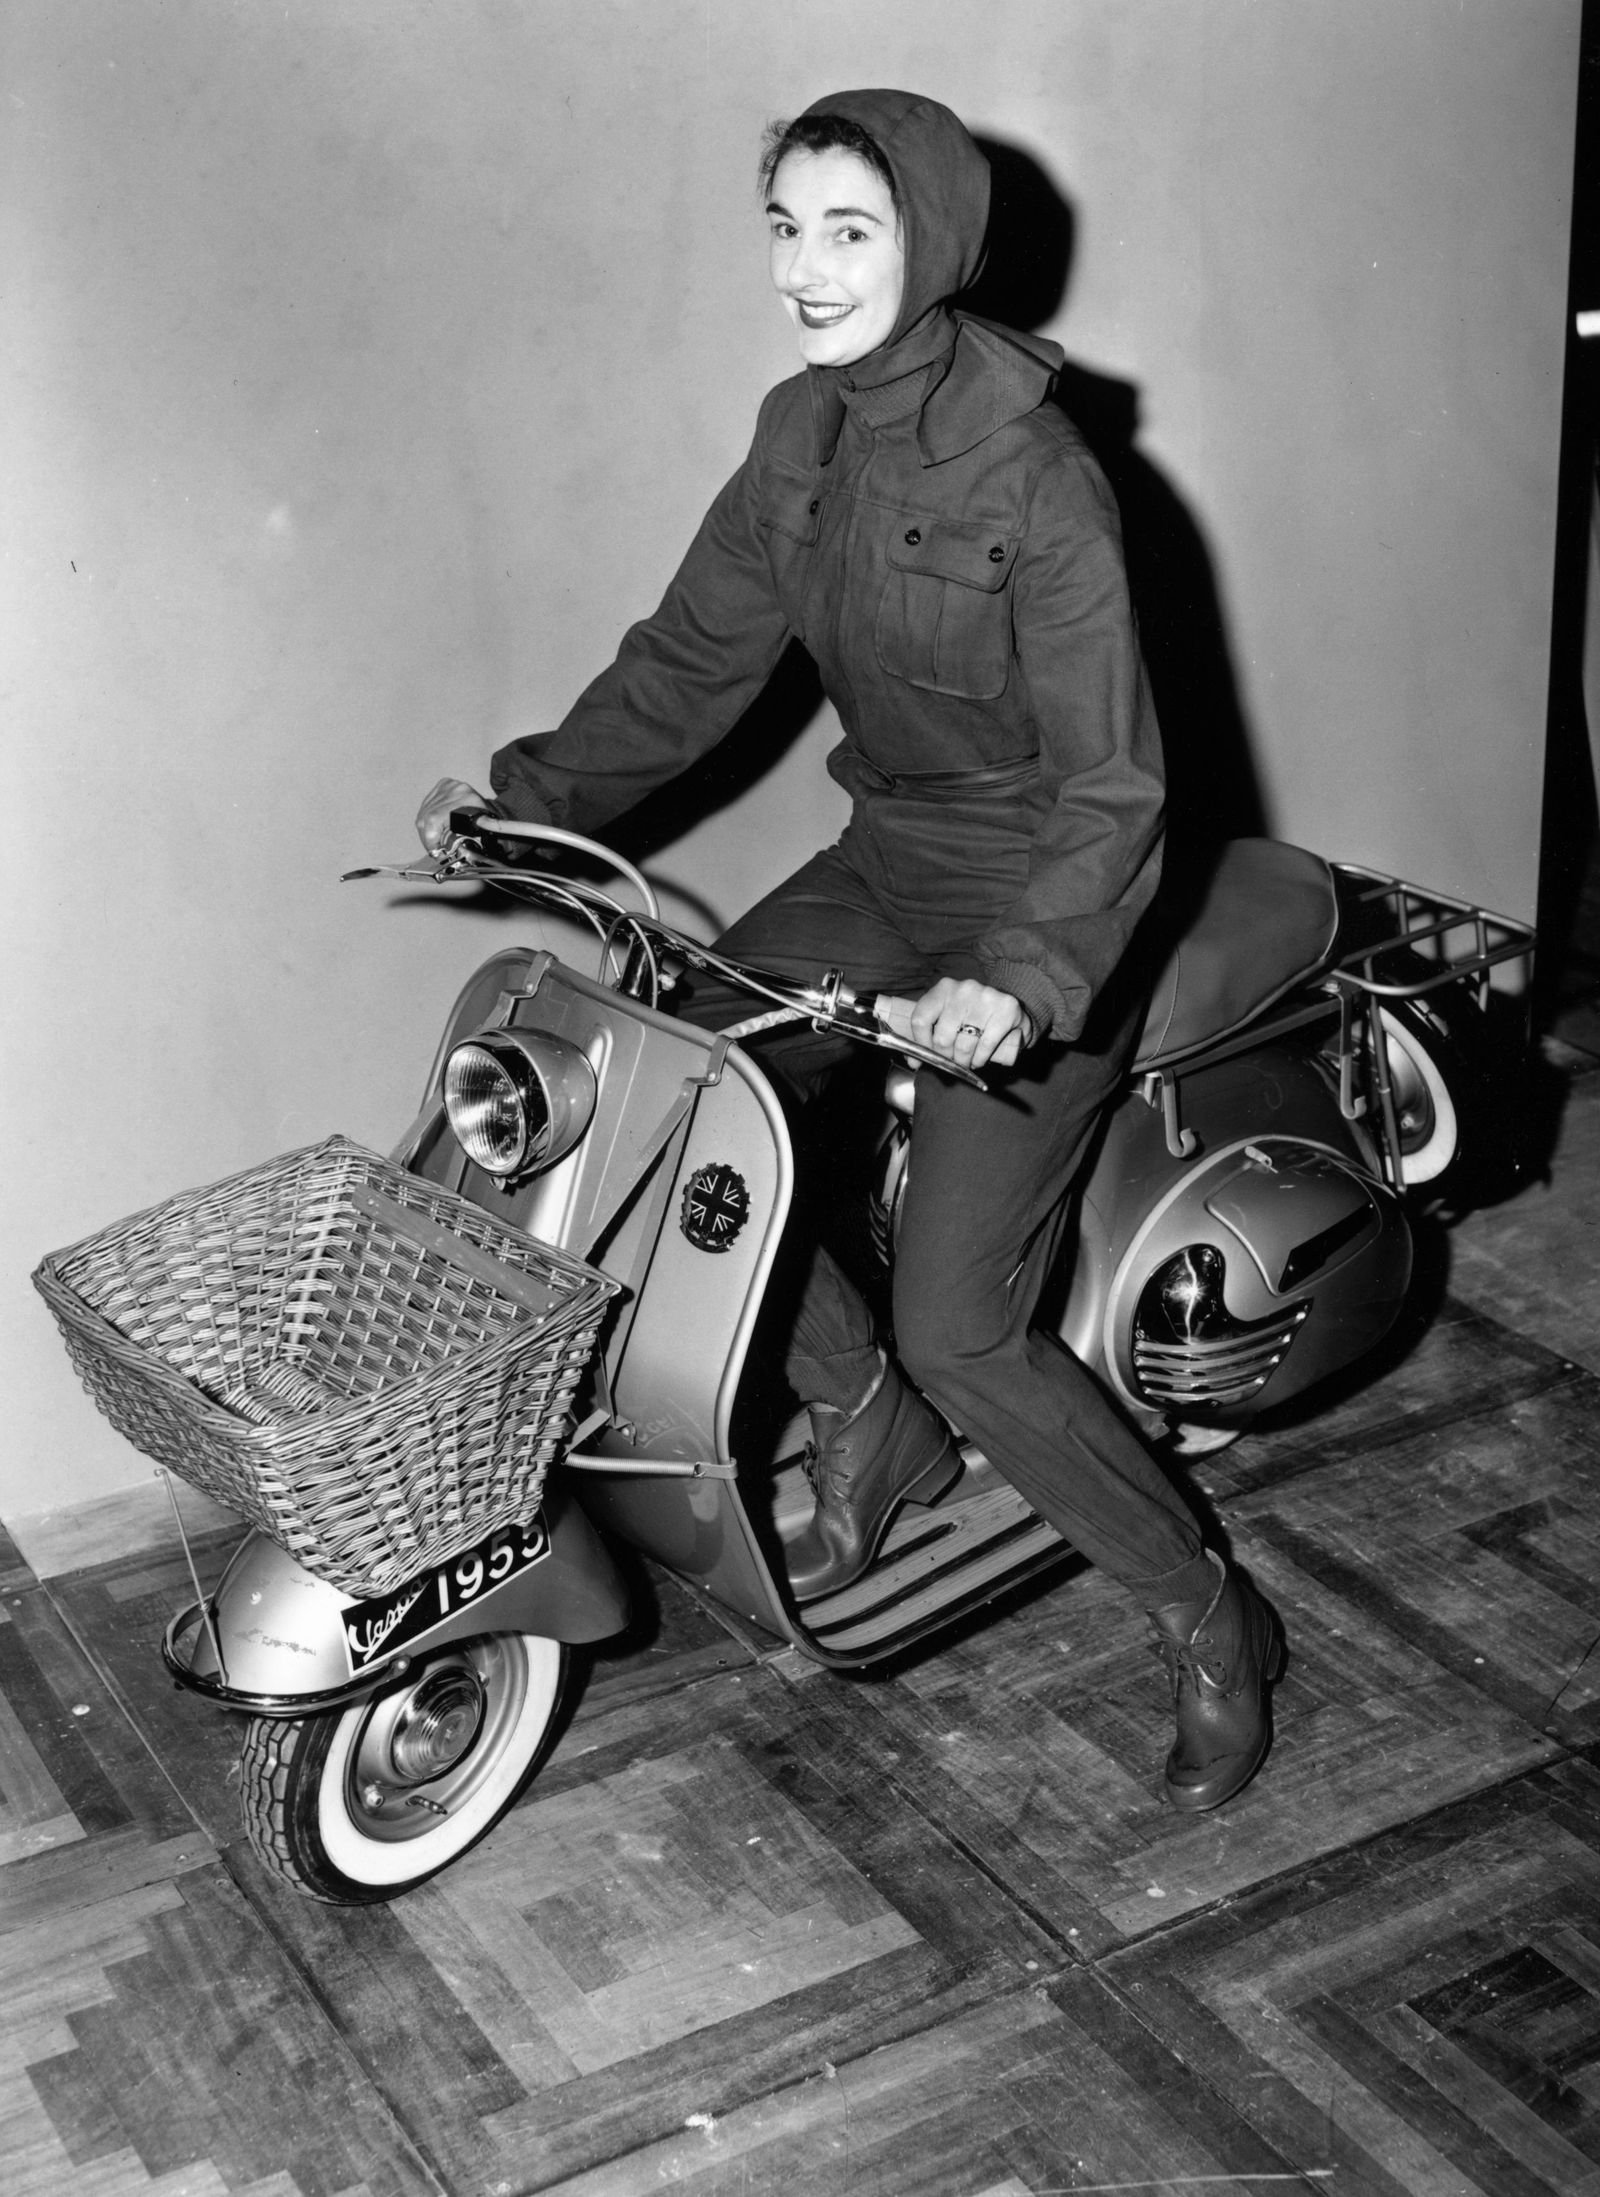 Scooter Suit